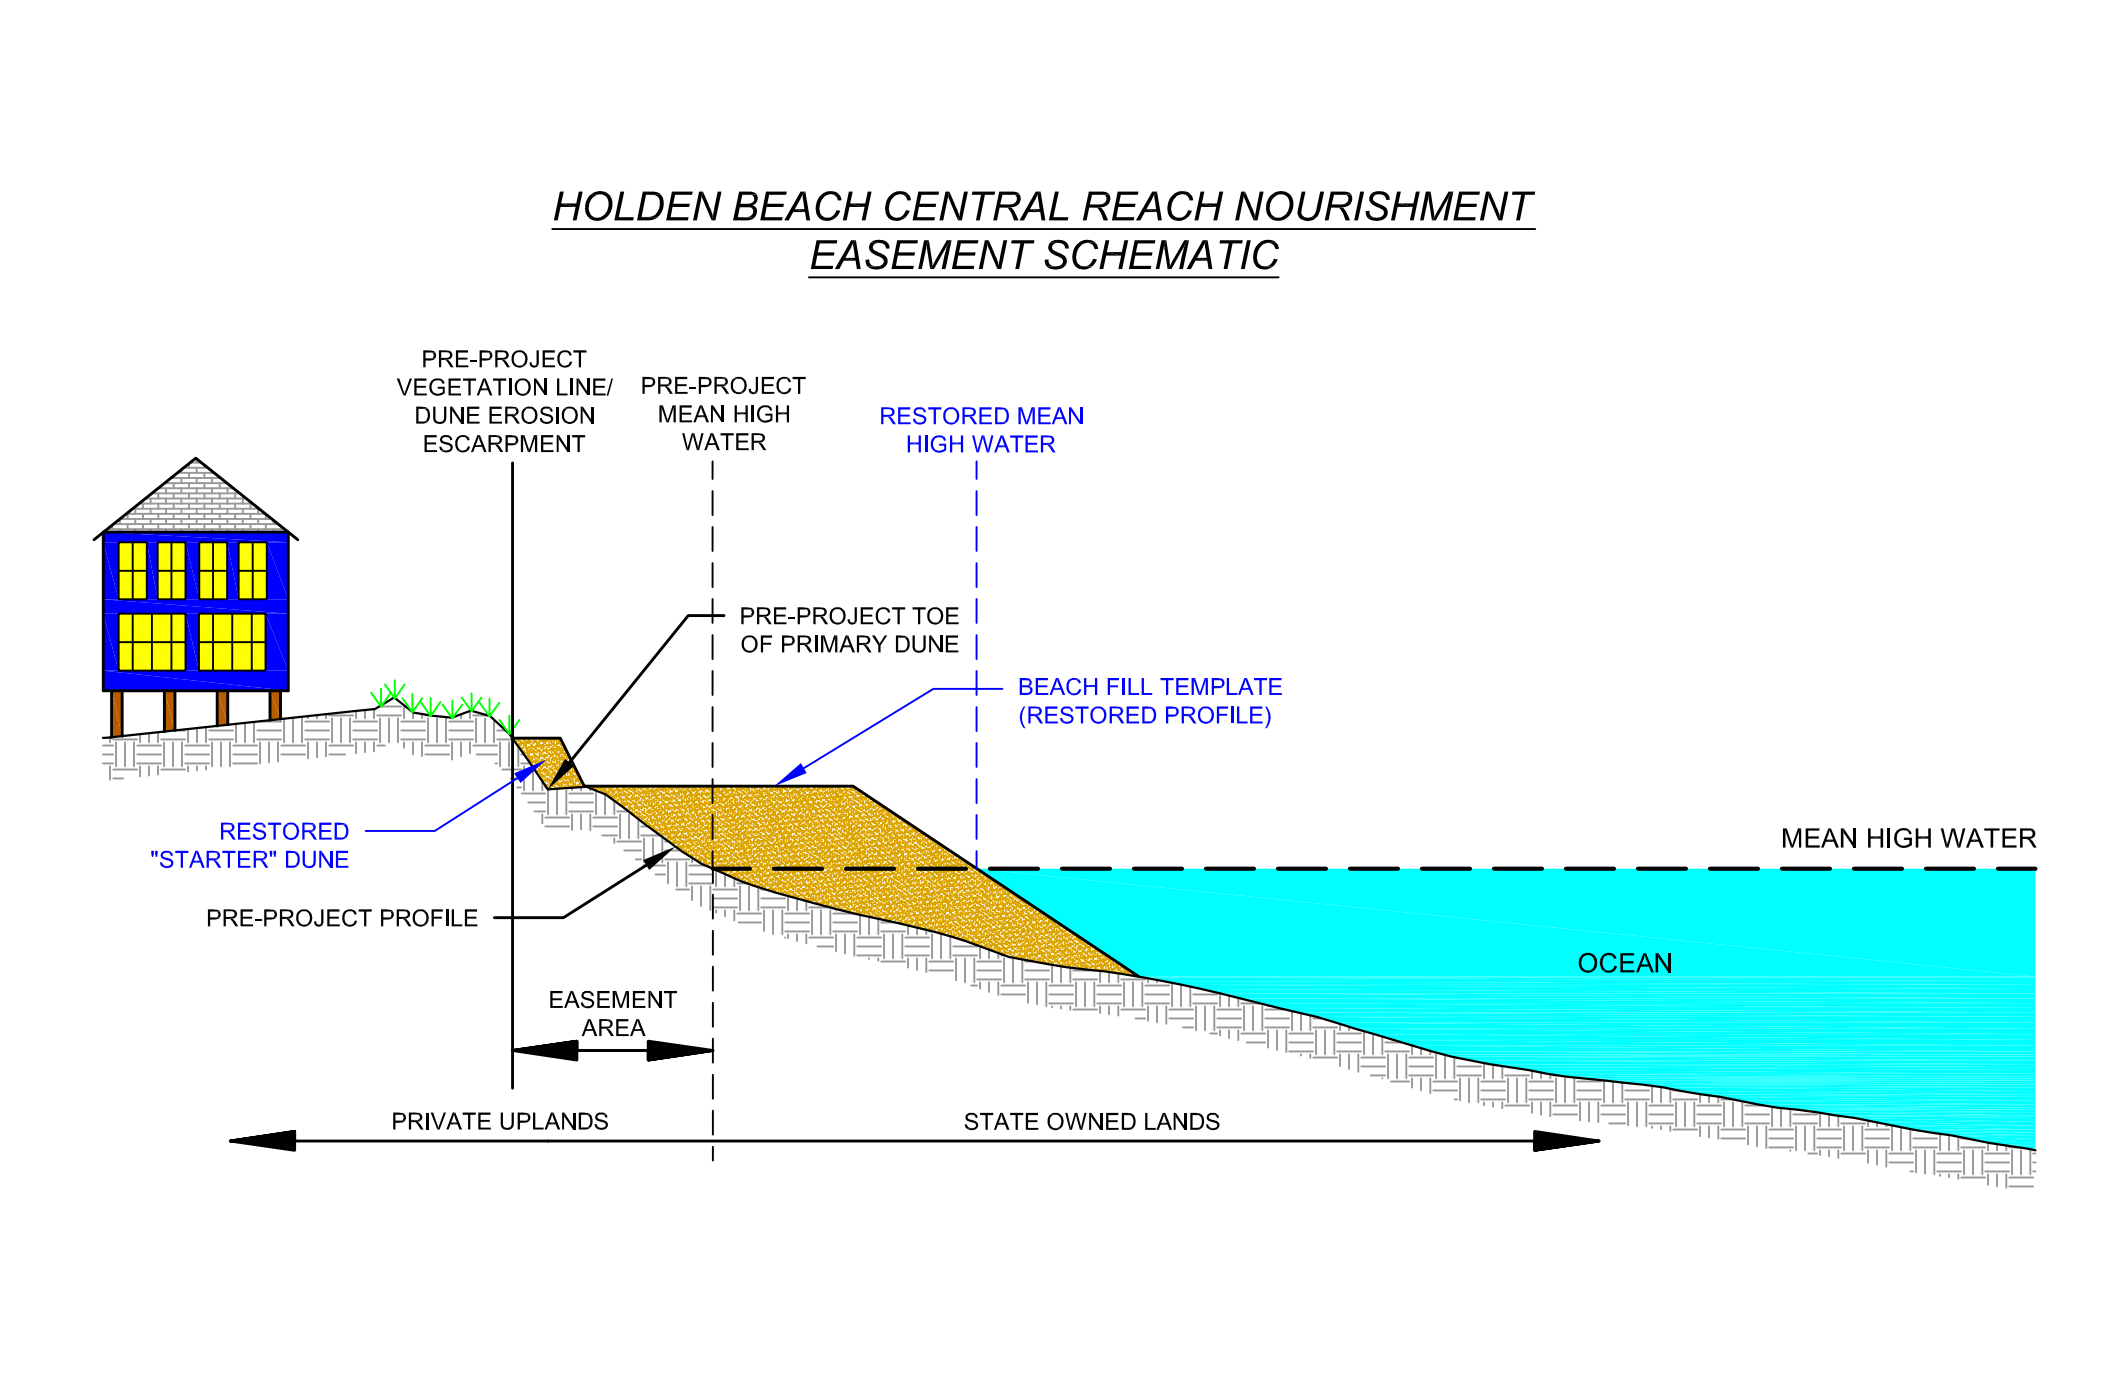 Beach Nourishment Diagram For Collection 17 Wallpapers